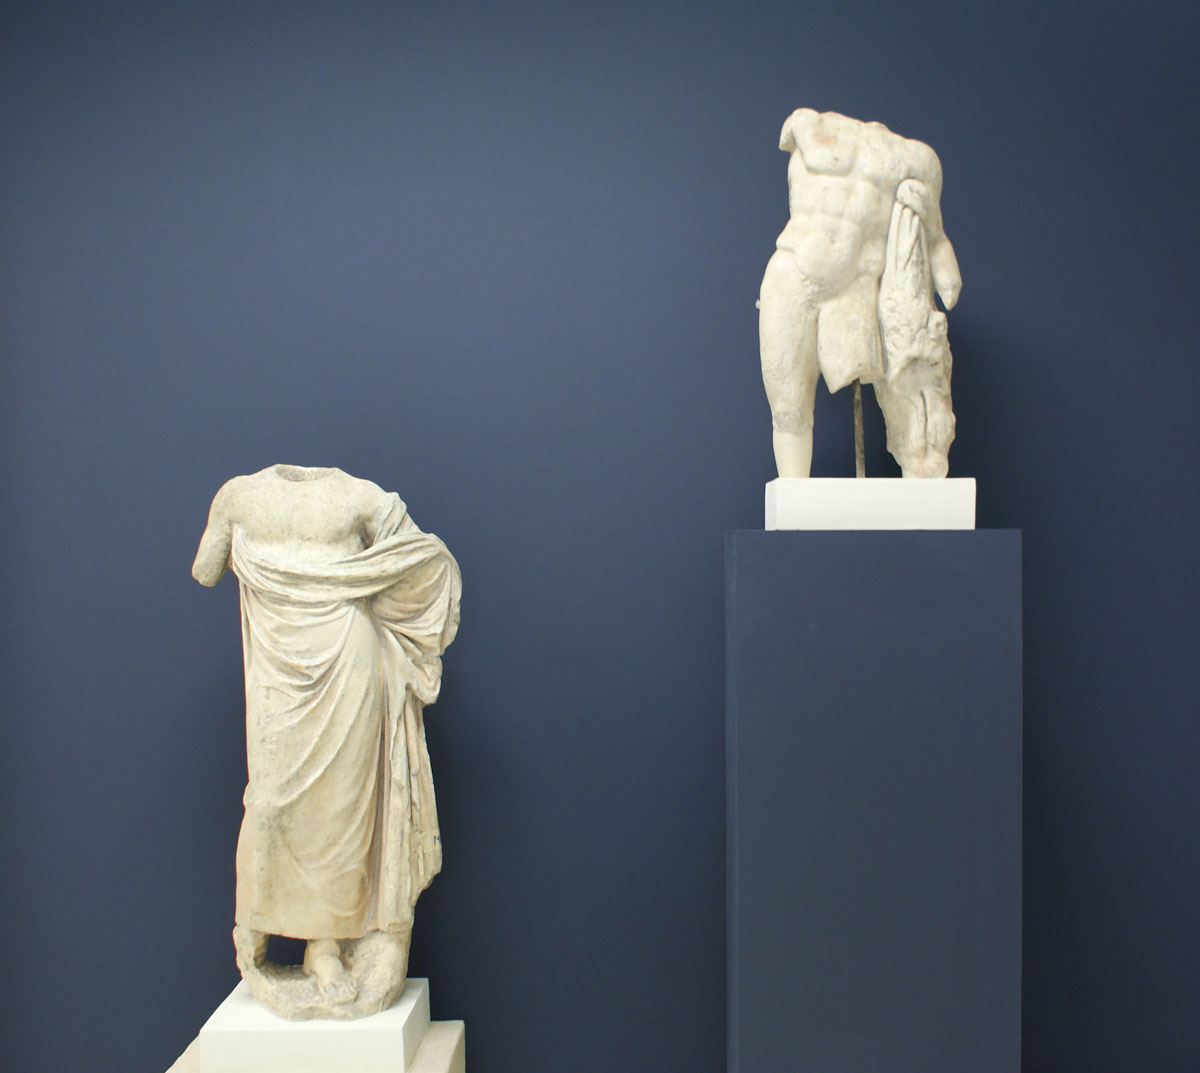 Left: Torso of statuette of Hercules. Possibly decoration of a trapezophoron (table support). Unknown provenance. AD 225-250. Right: Statuette of Asklipios. Of Pentelic marble. Provenance unknown. 1st c. BC.